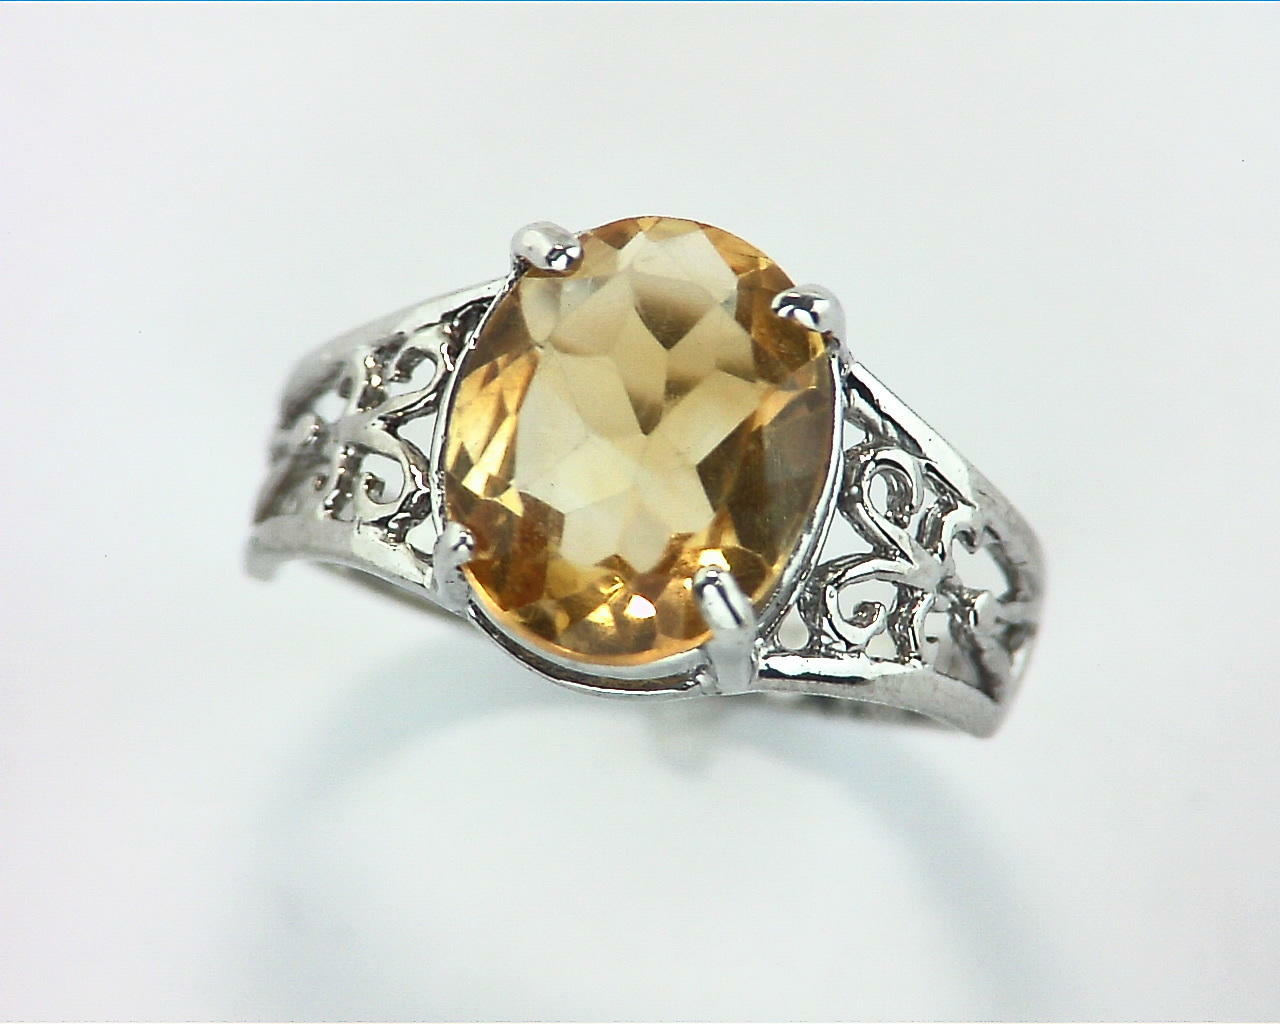 Citrine Gemstone In A Sterling Silver Ring